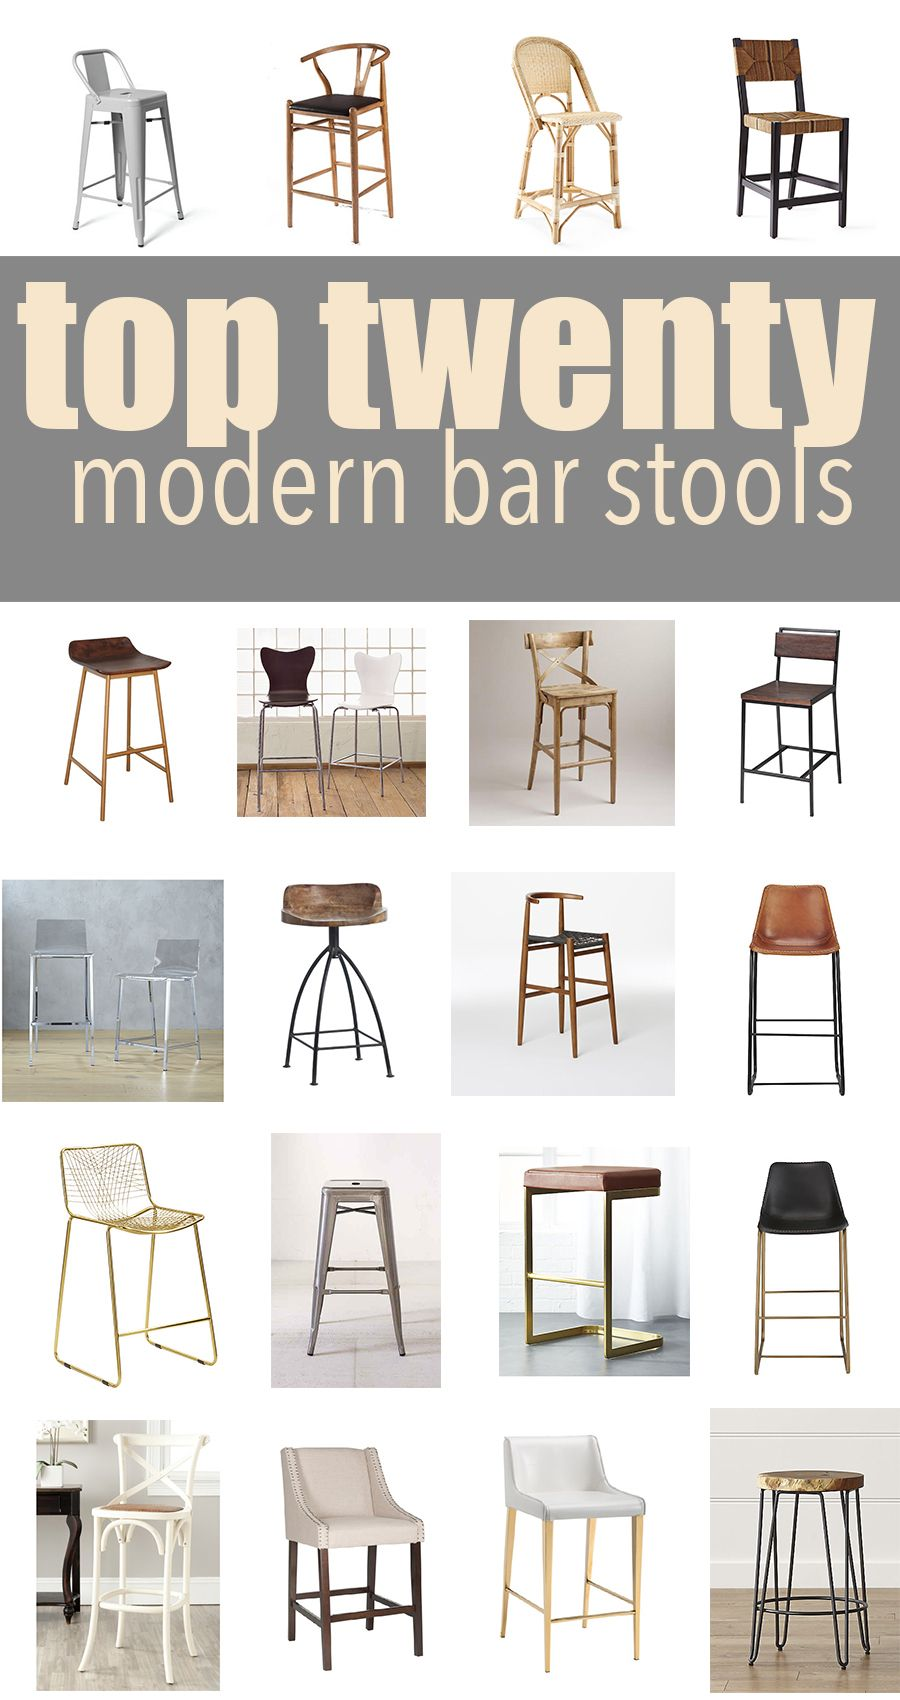 Top 20 Modern Kitchen Bar Stools | CC and Mike | Lifestyle and ...